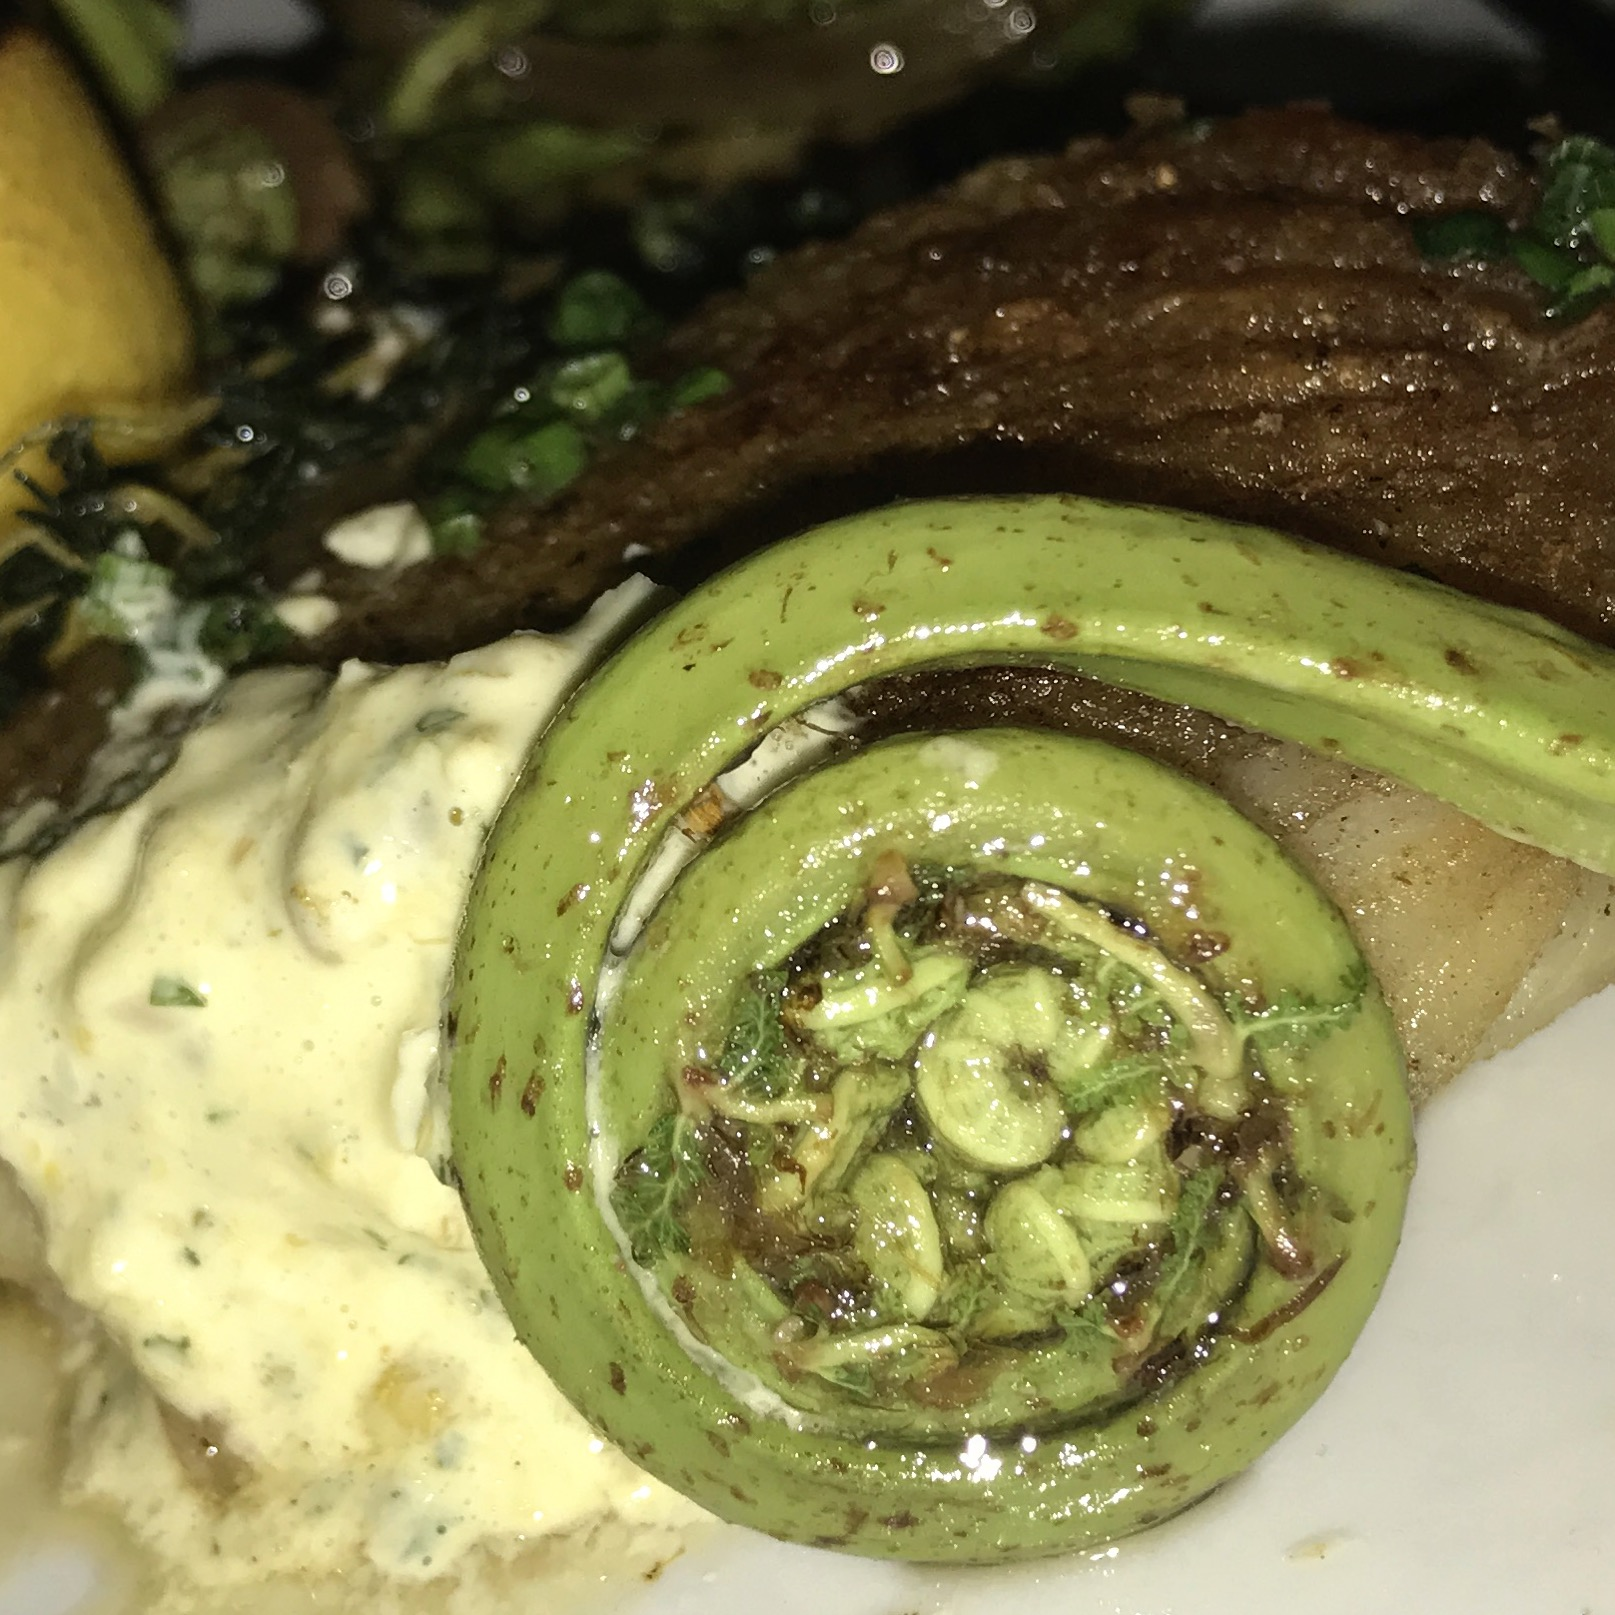 close up of a fiddlehead fern, served with skatefish,potato puree and mushrooms at Craft